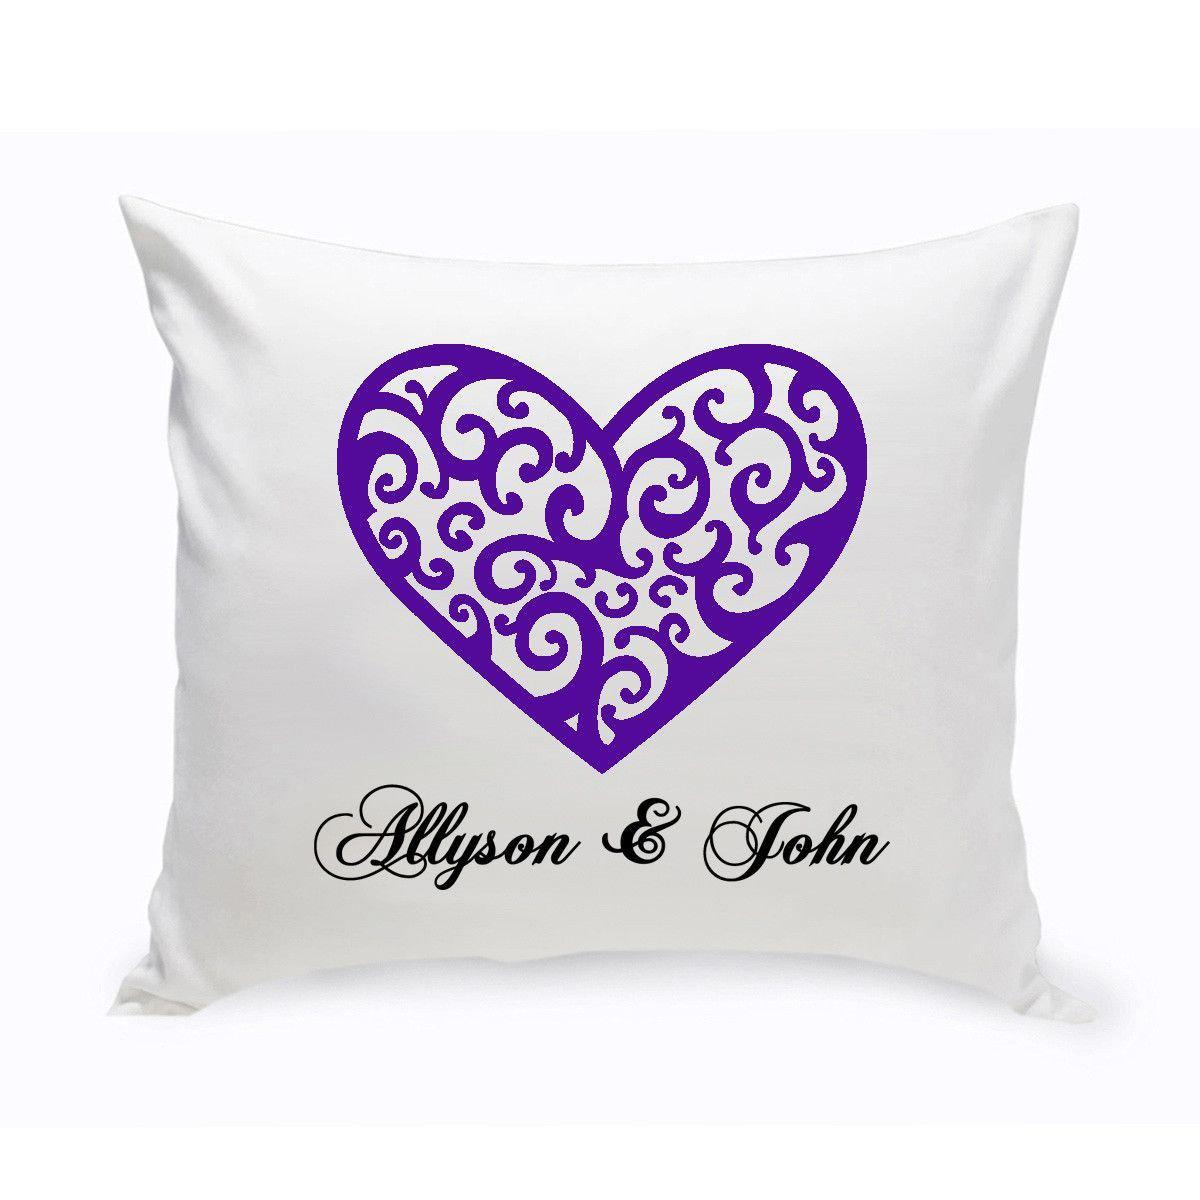 Personalized Heart Throw Pillow : Personalized Throw Pillows - Personalized Couples Unity Vintage Heart